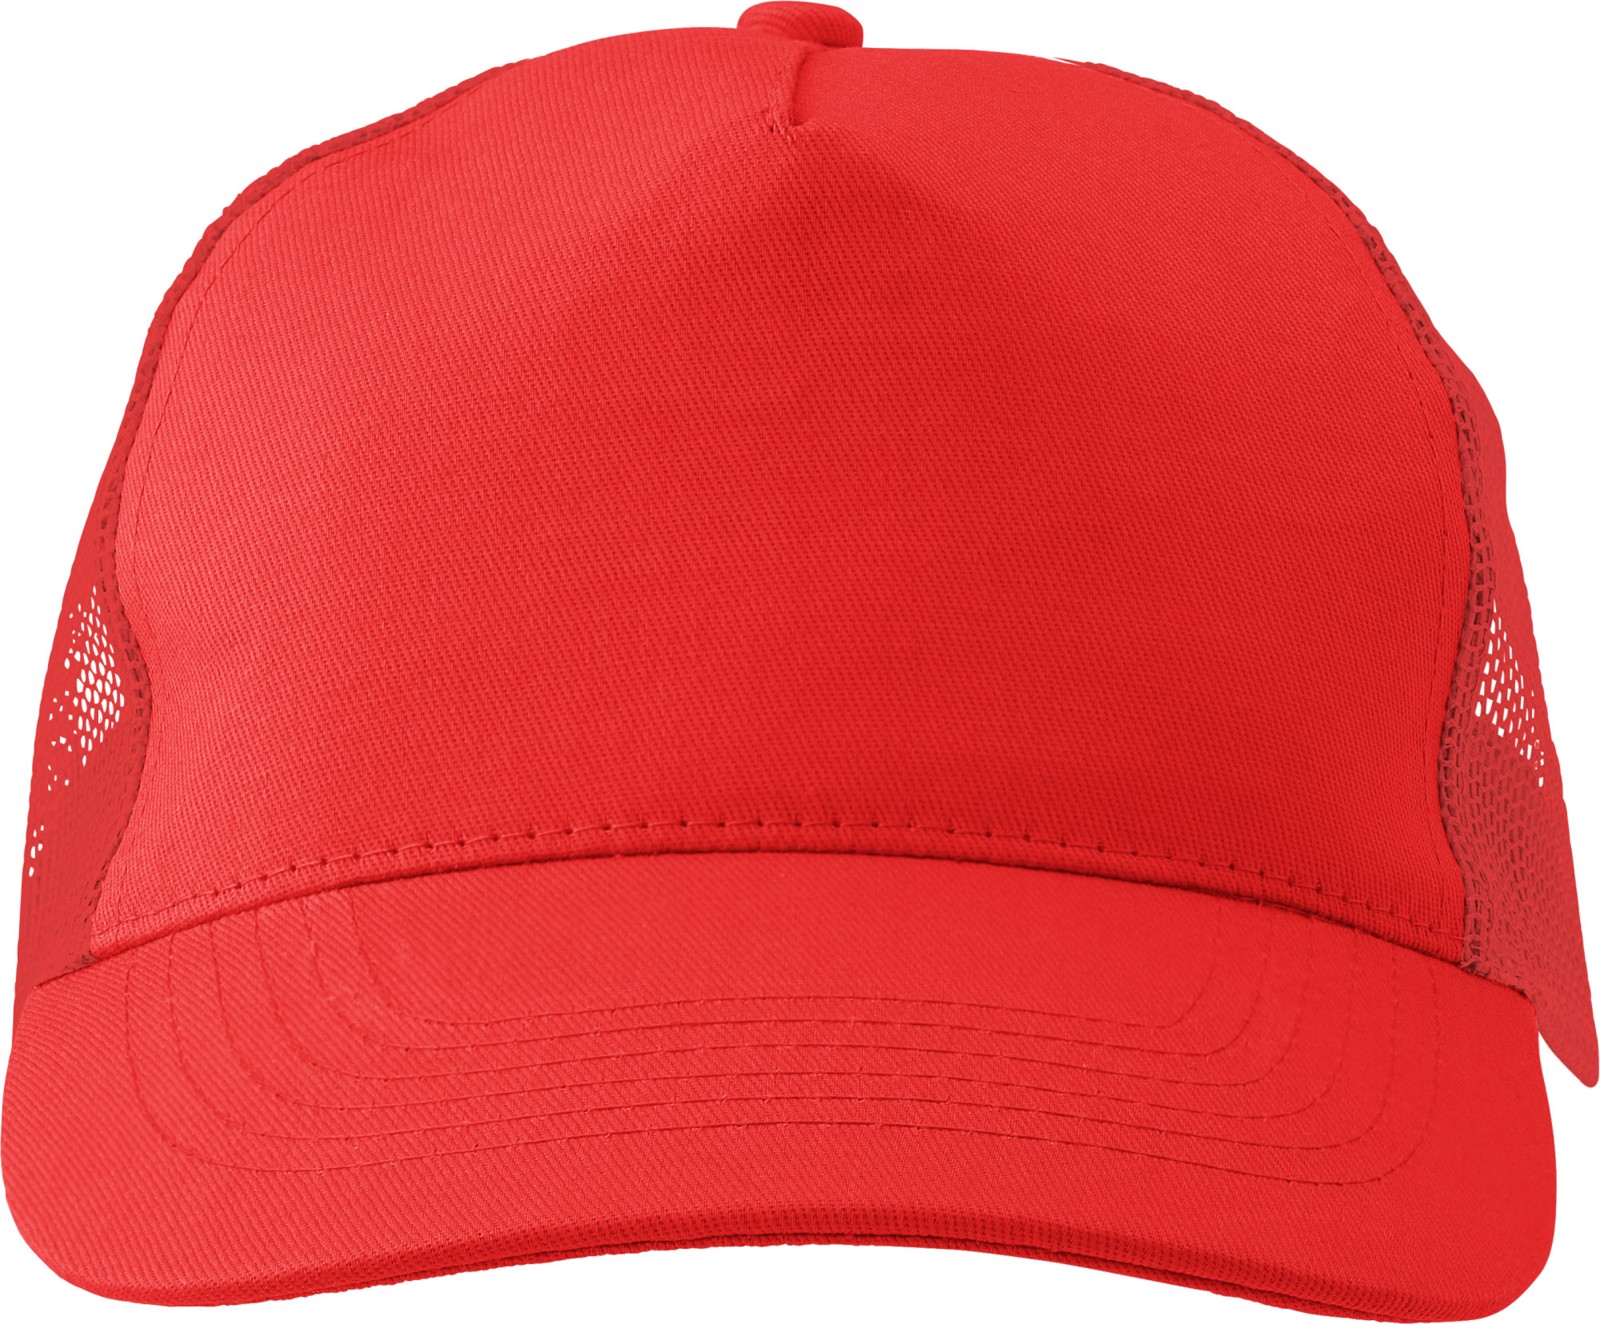 Cotton twill and plastic cap - Red